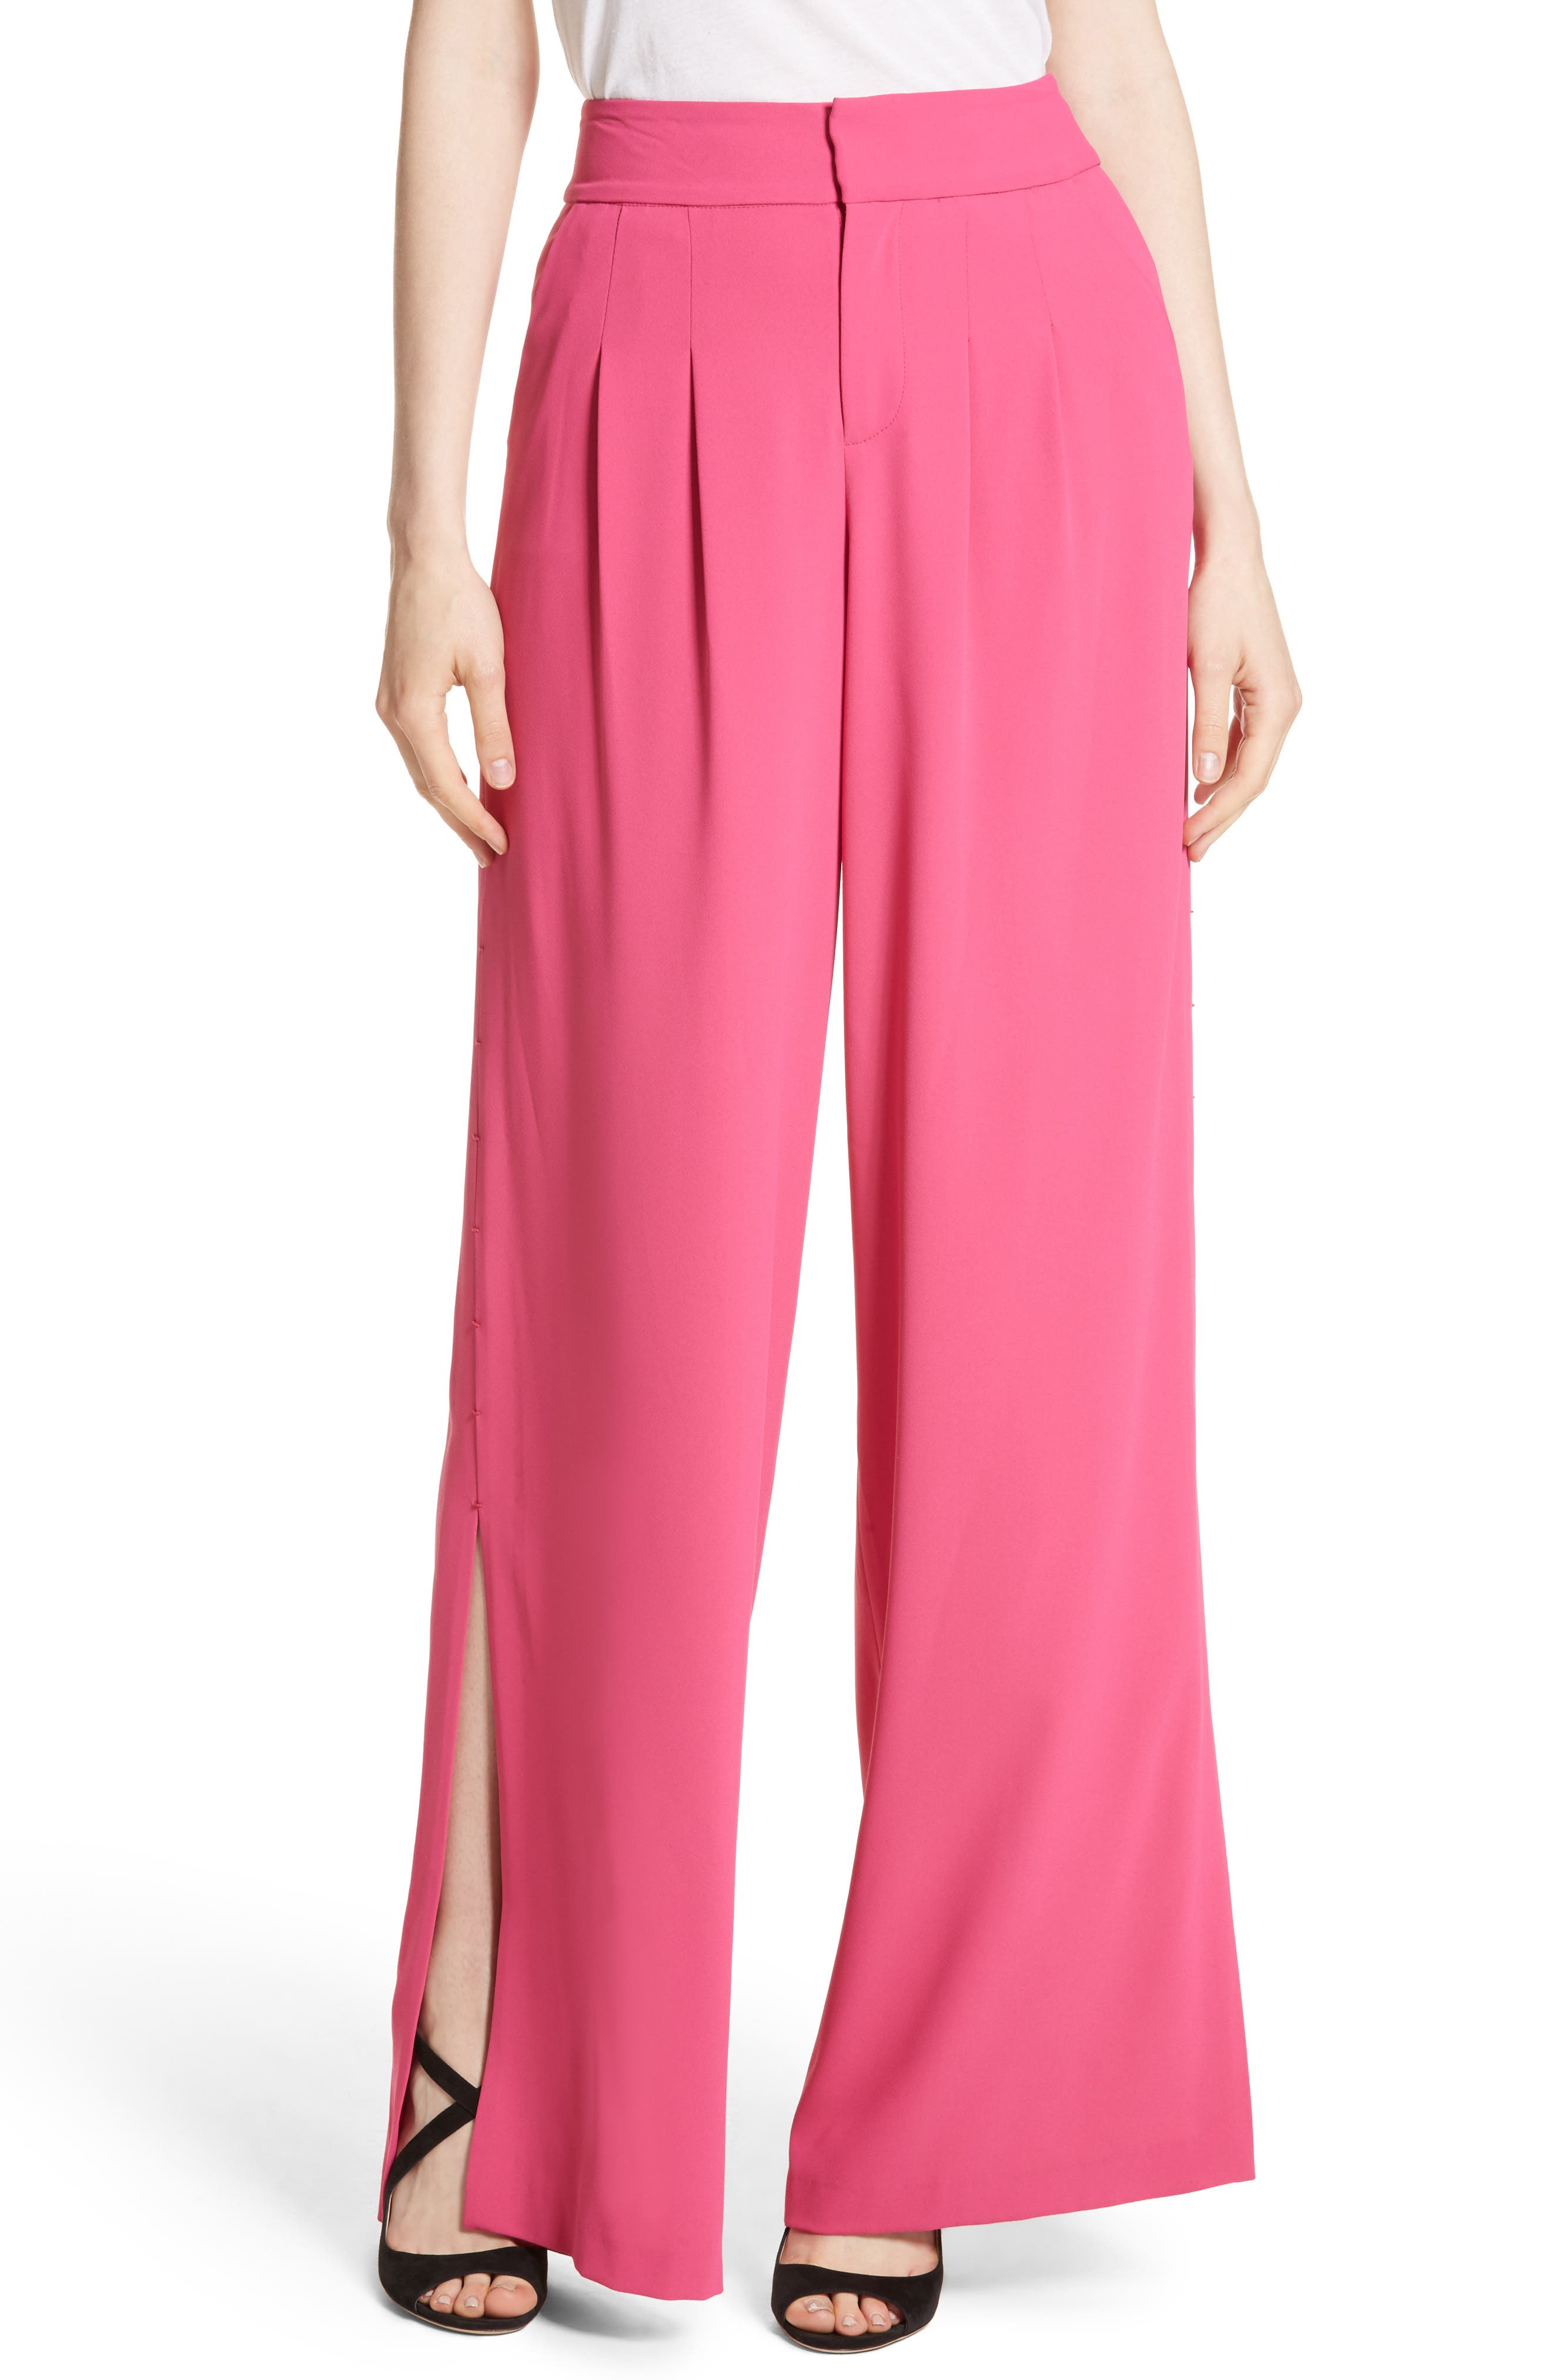 Alice + Olivia Shavon High Waist Side Slit Flare Pants